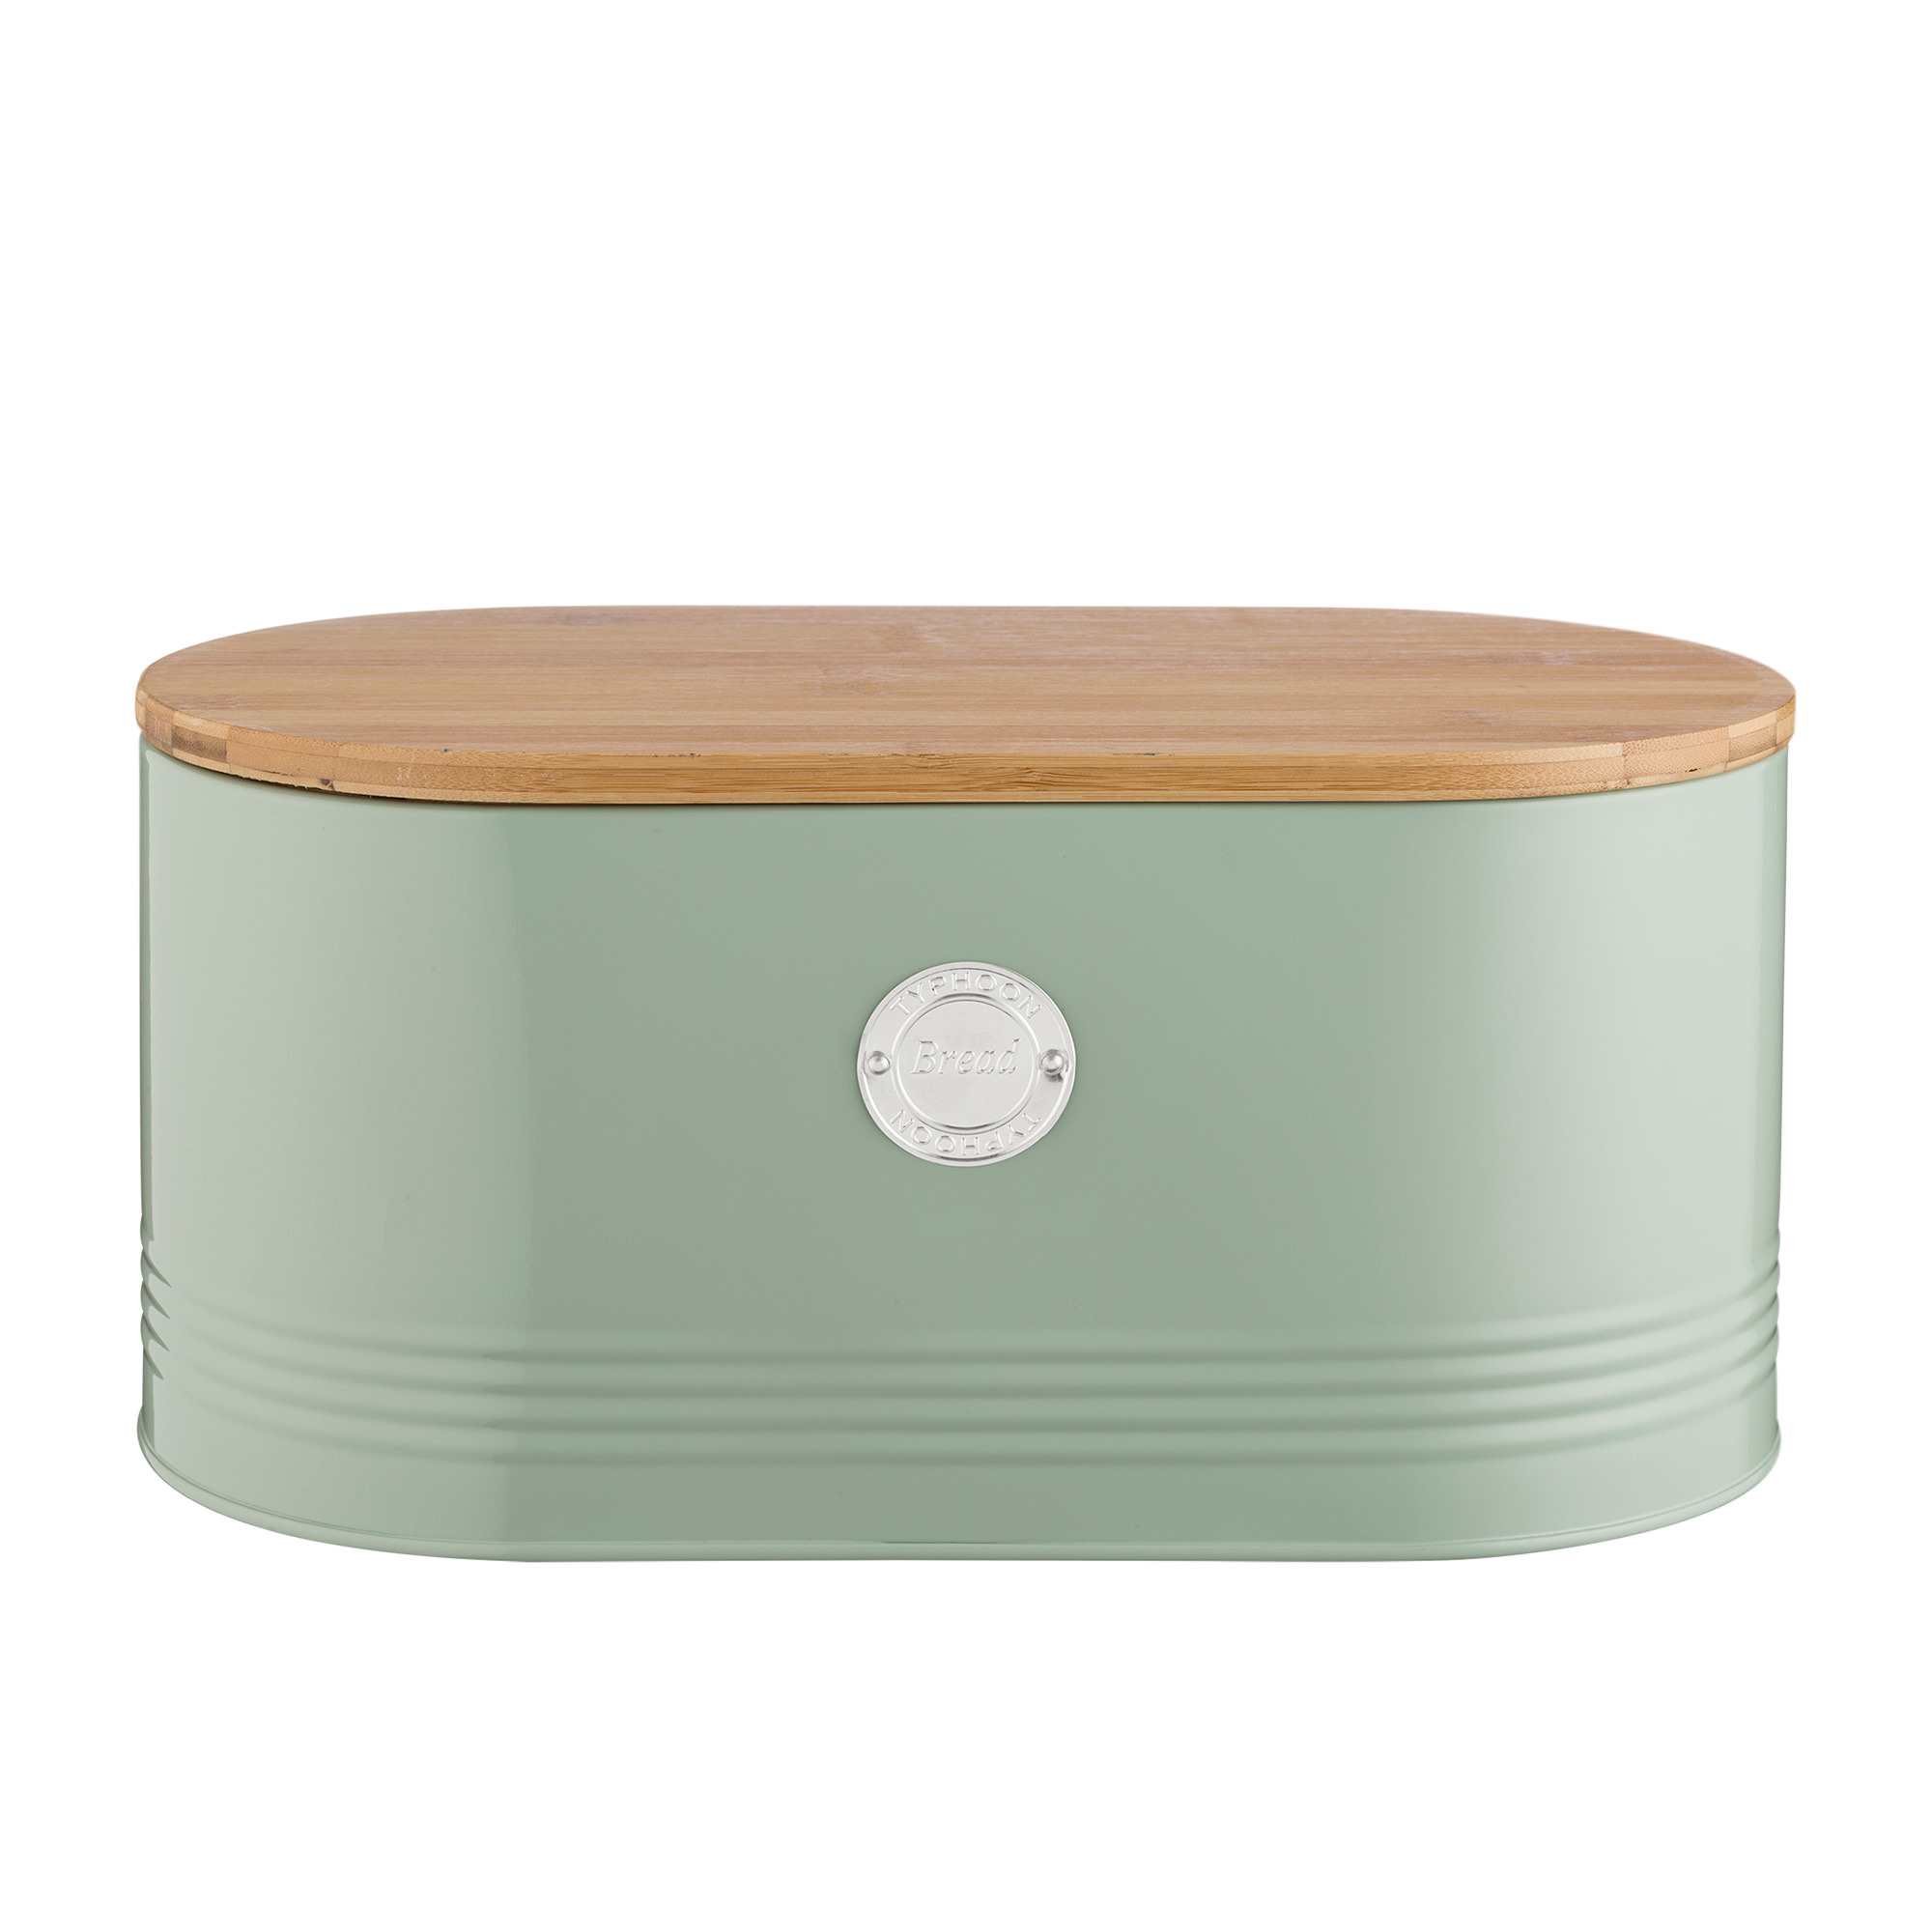 Typhoon Living Bread Bin Sage